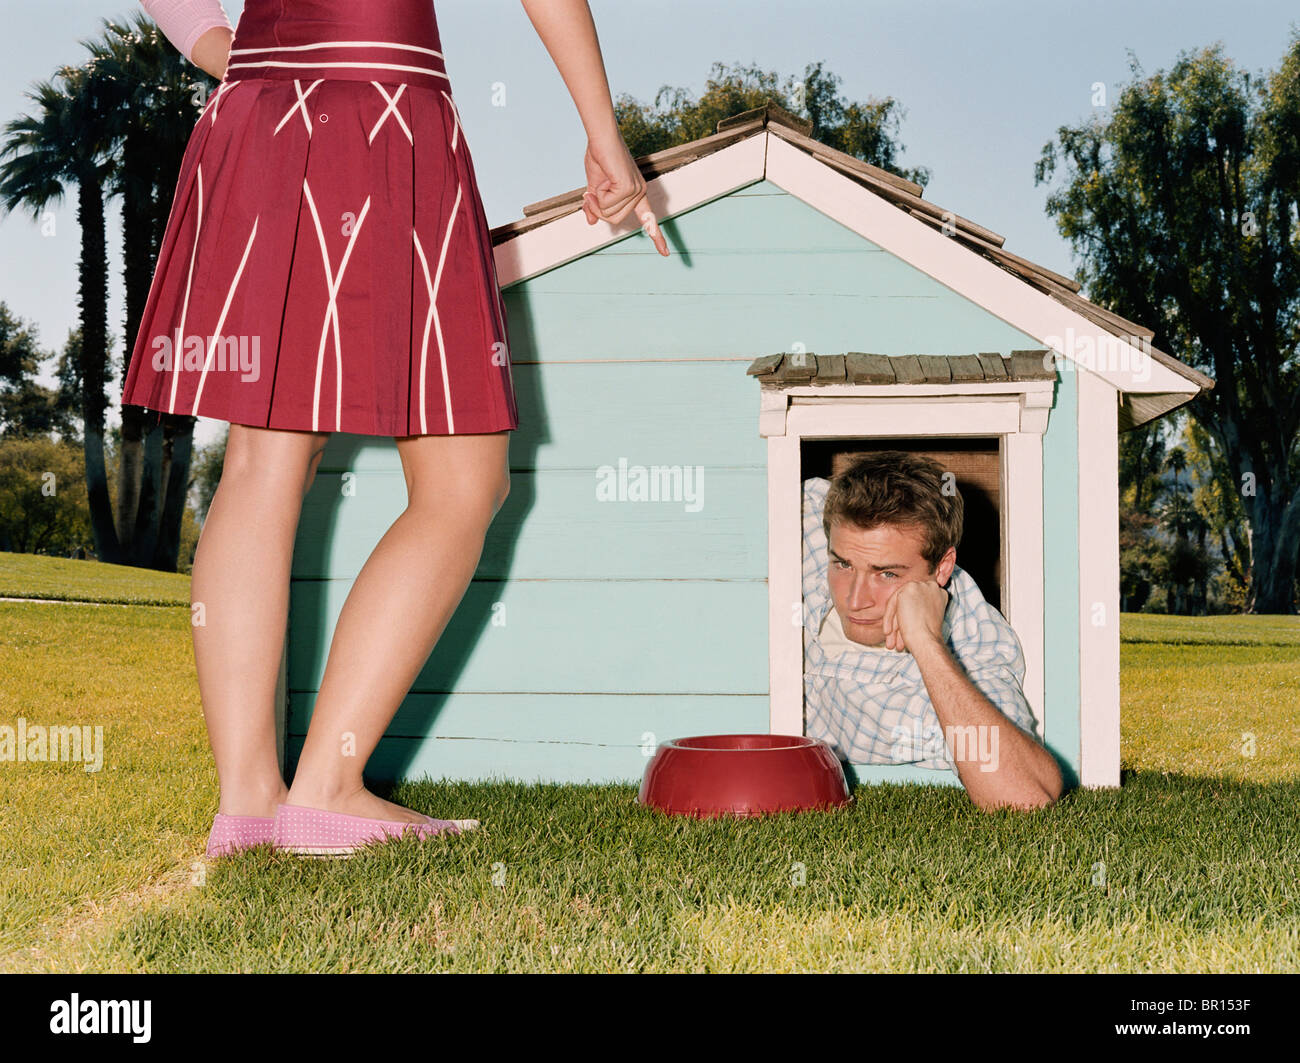 Doghouse High Resolution Stock Photography and Images - Alamy